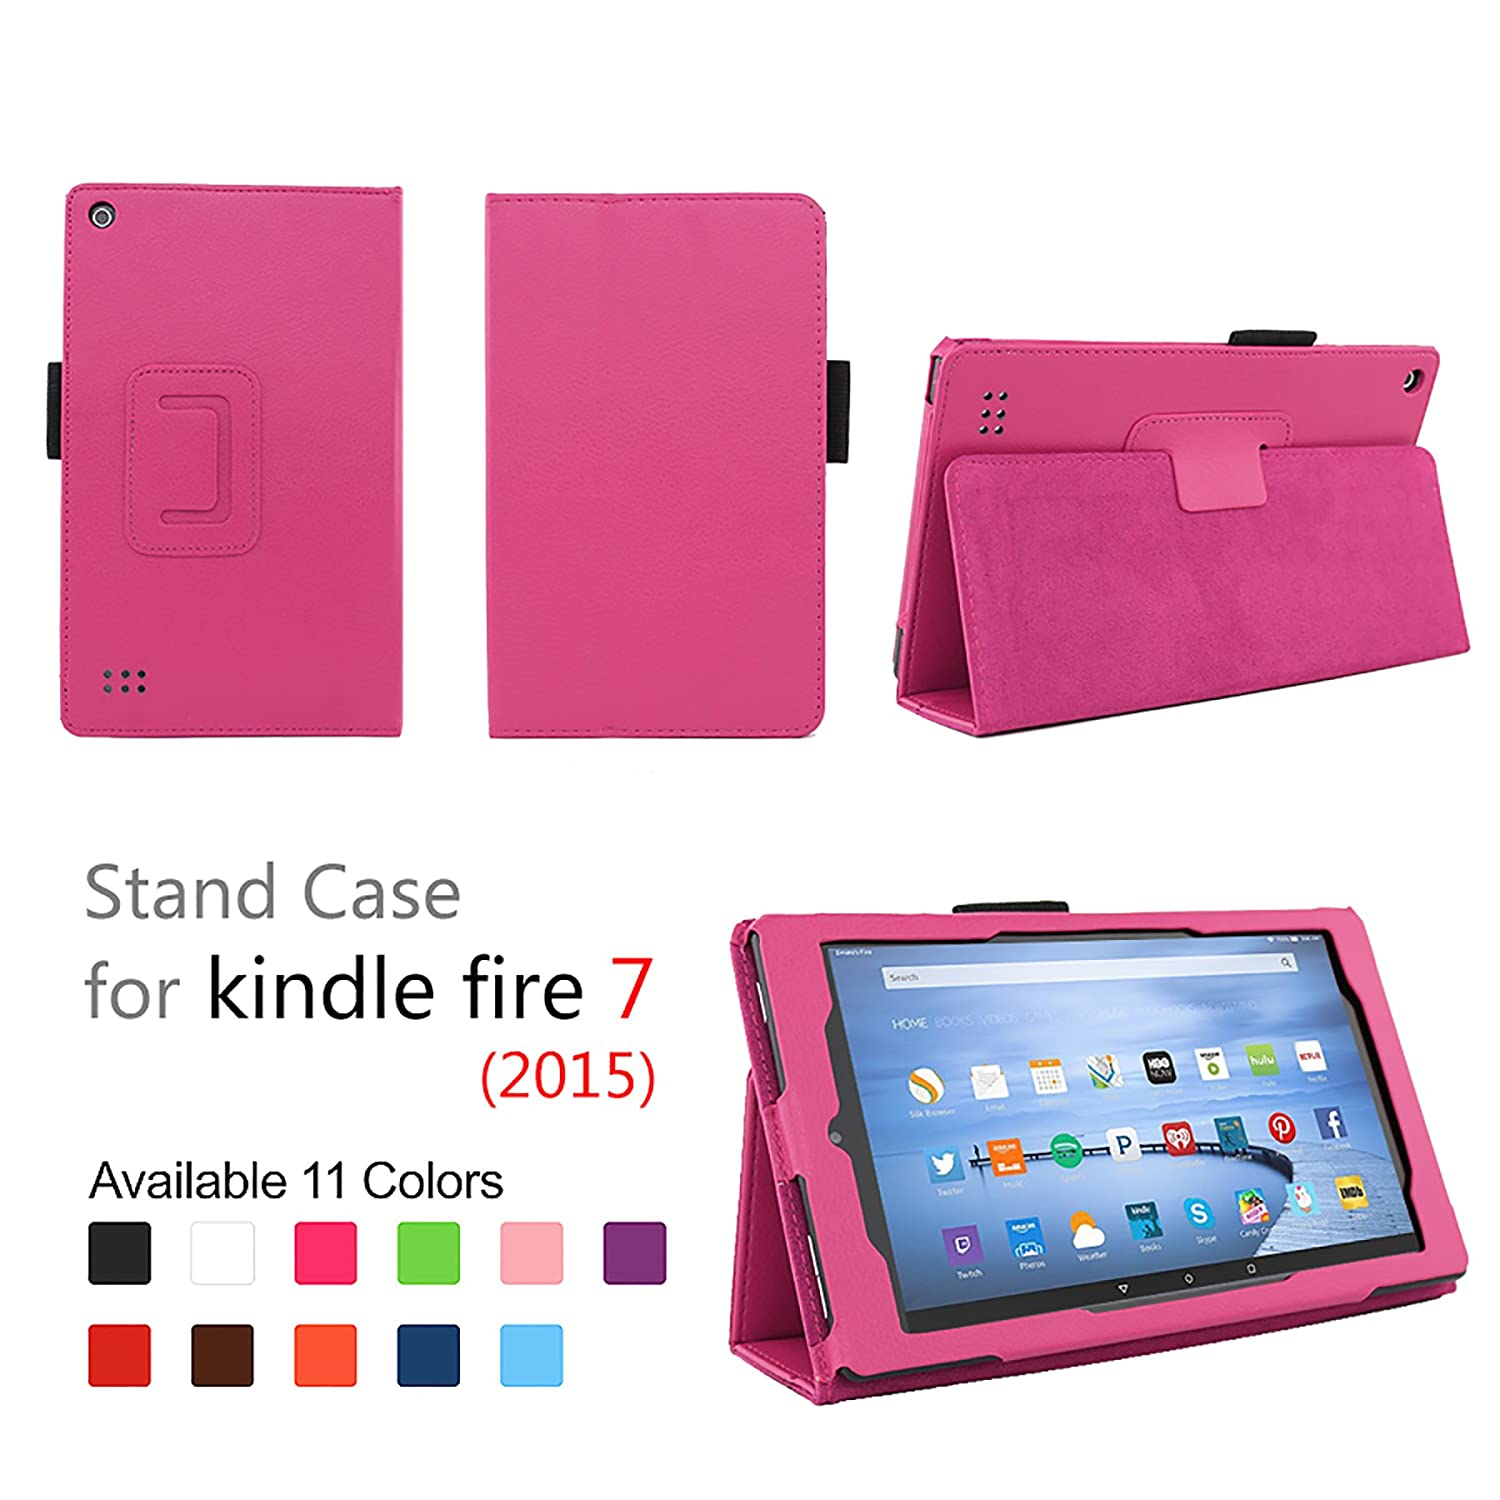 "Case for Fire 7 - Elsse Premium Folio Case with Stand for the NEW Fire, 7"" Display (Sept, 2015 Release) - Hot Pink"